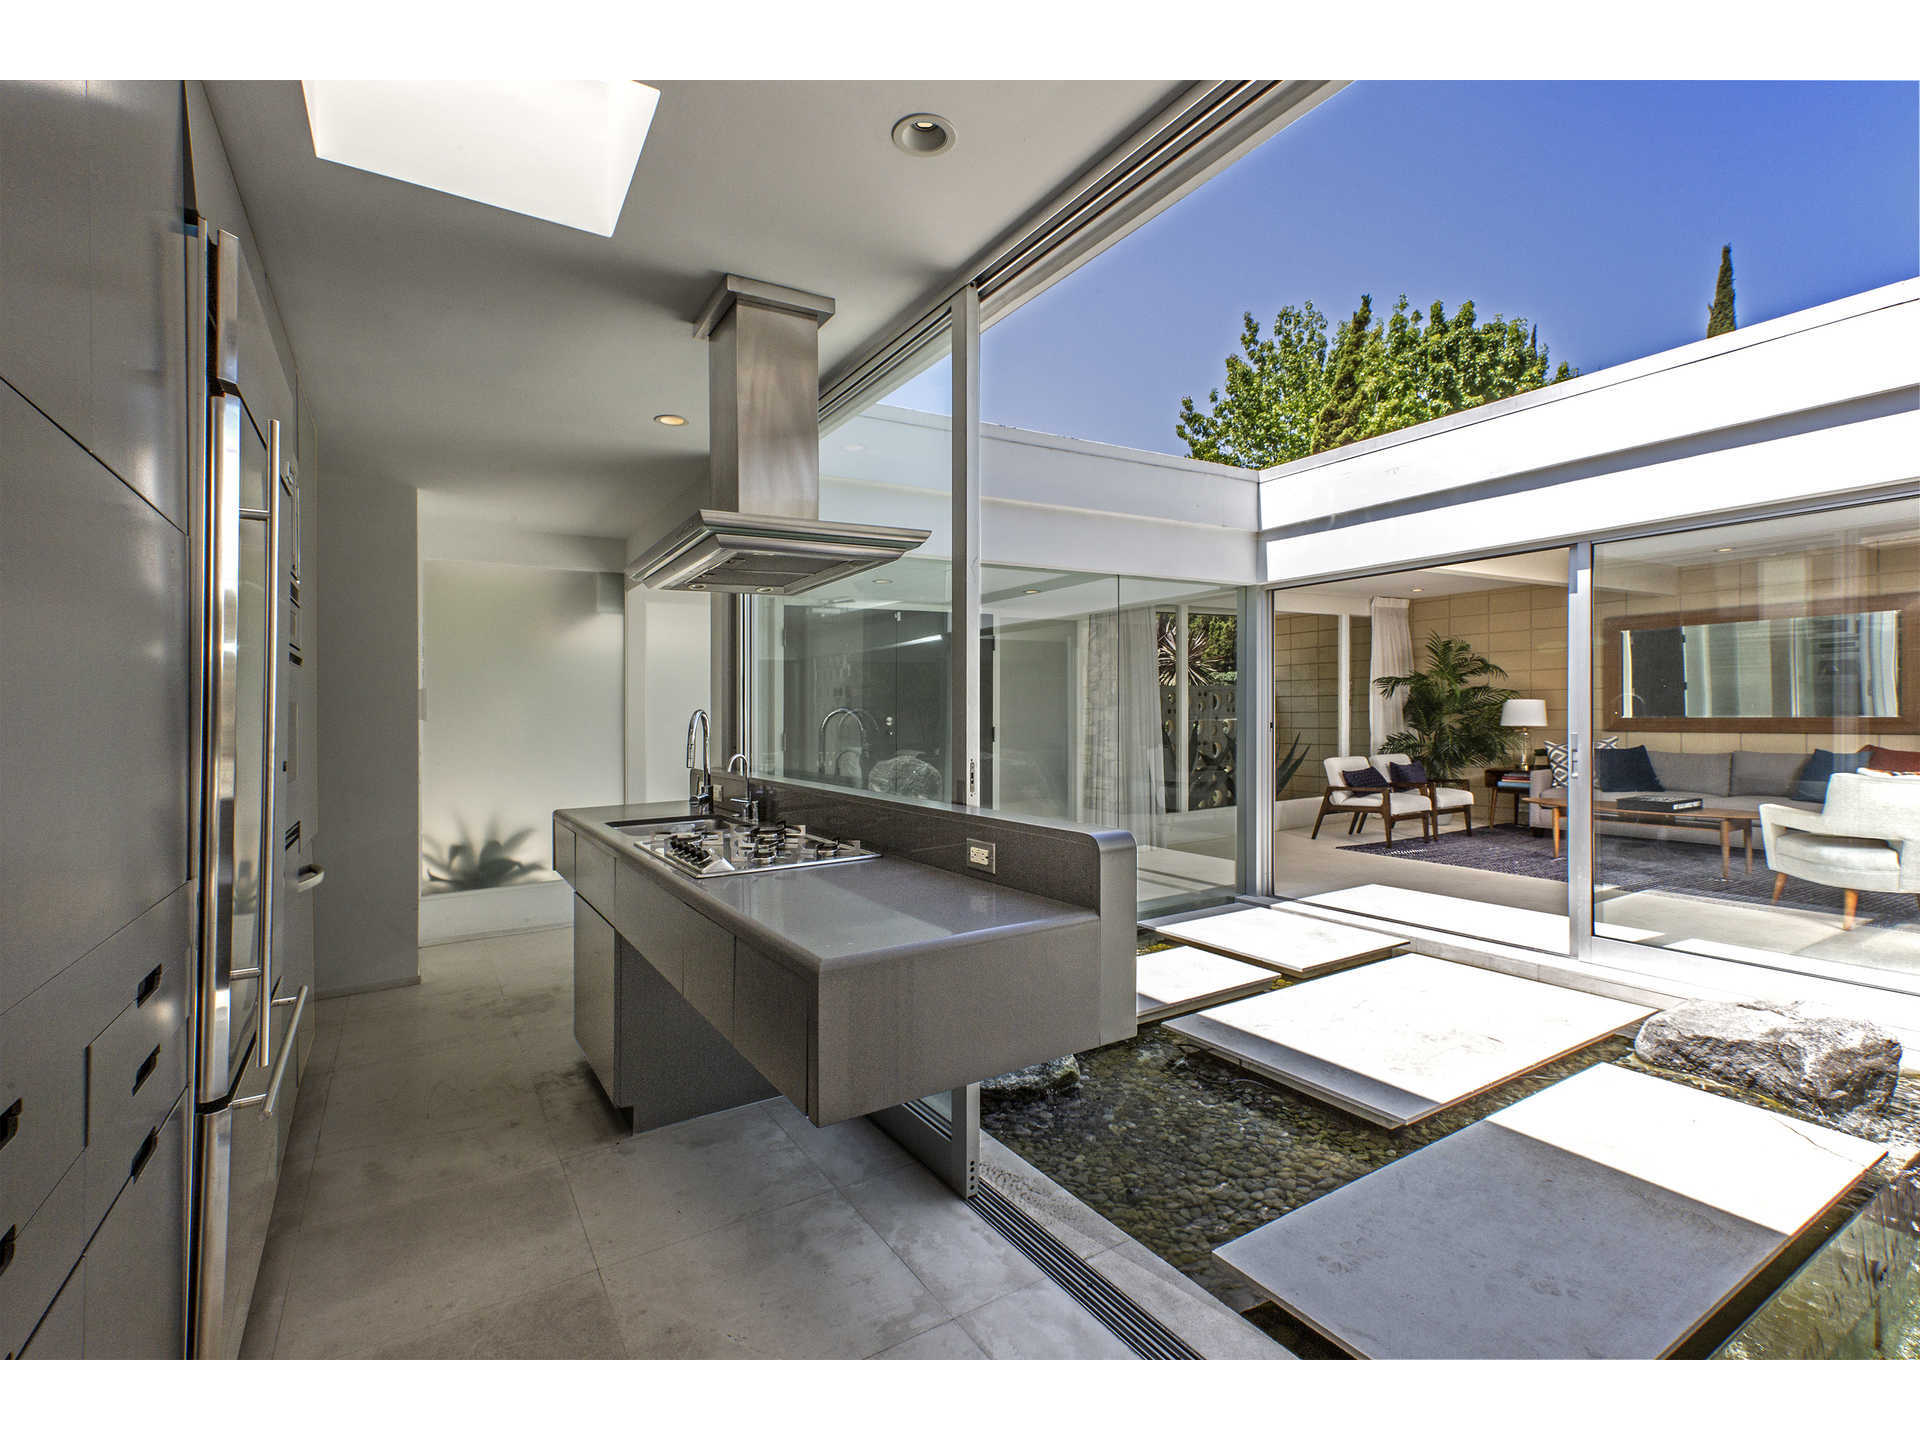 1959 midcentury home in Los Angeles - kitchen outside view